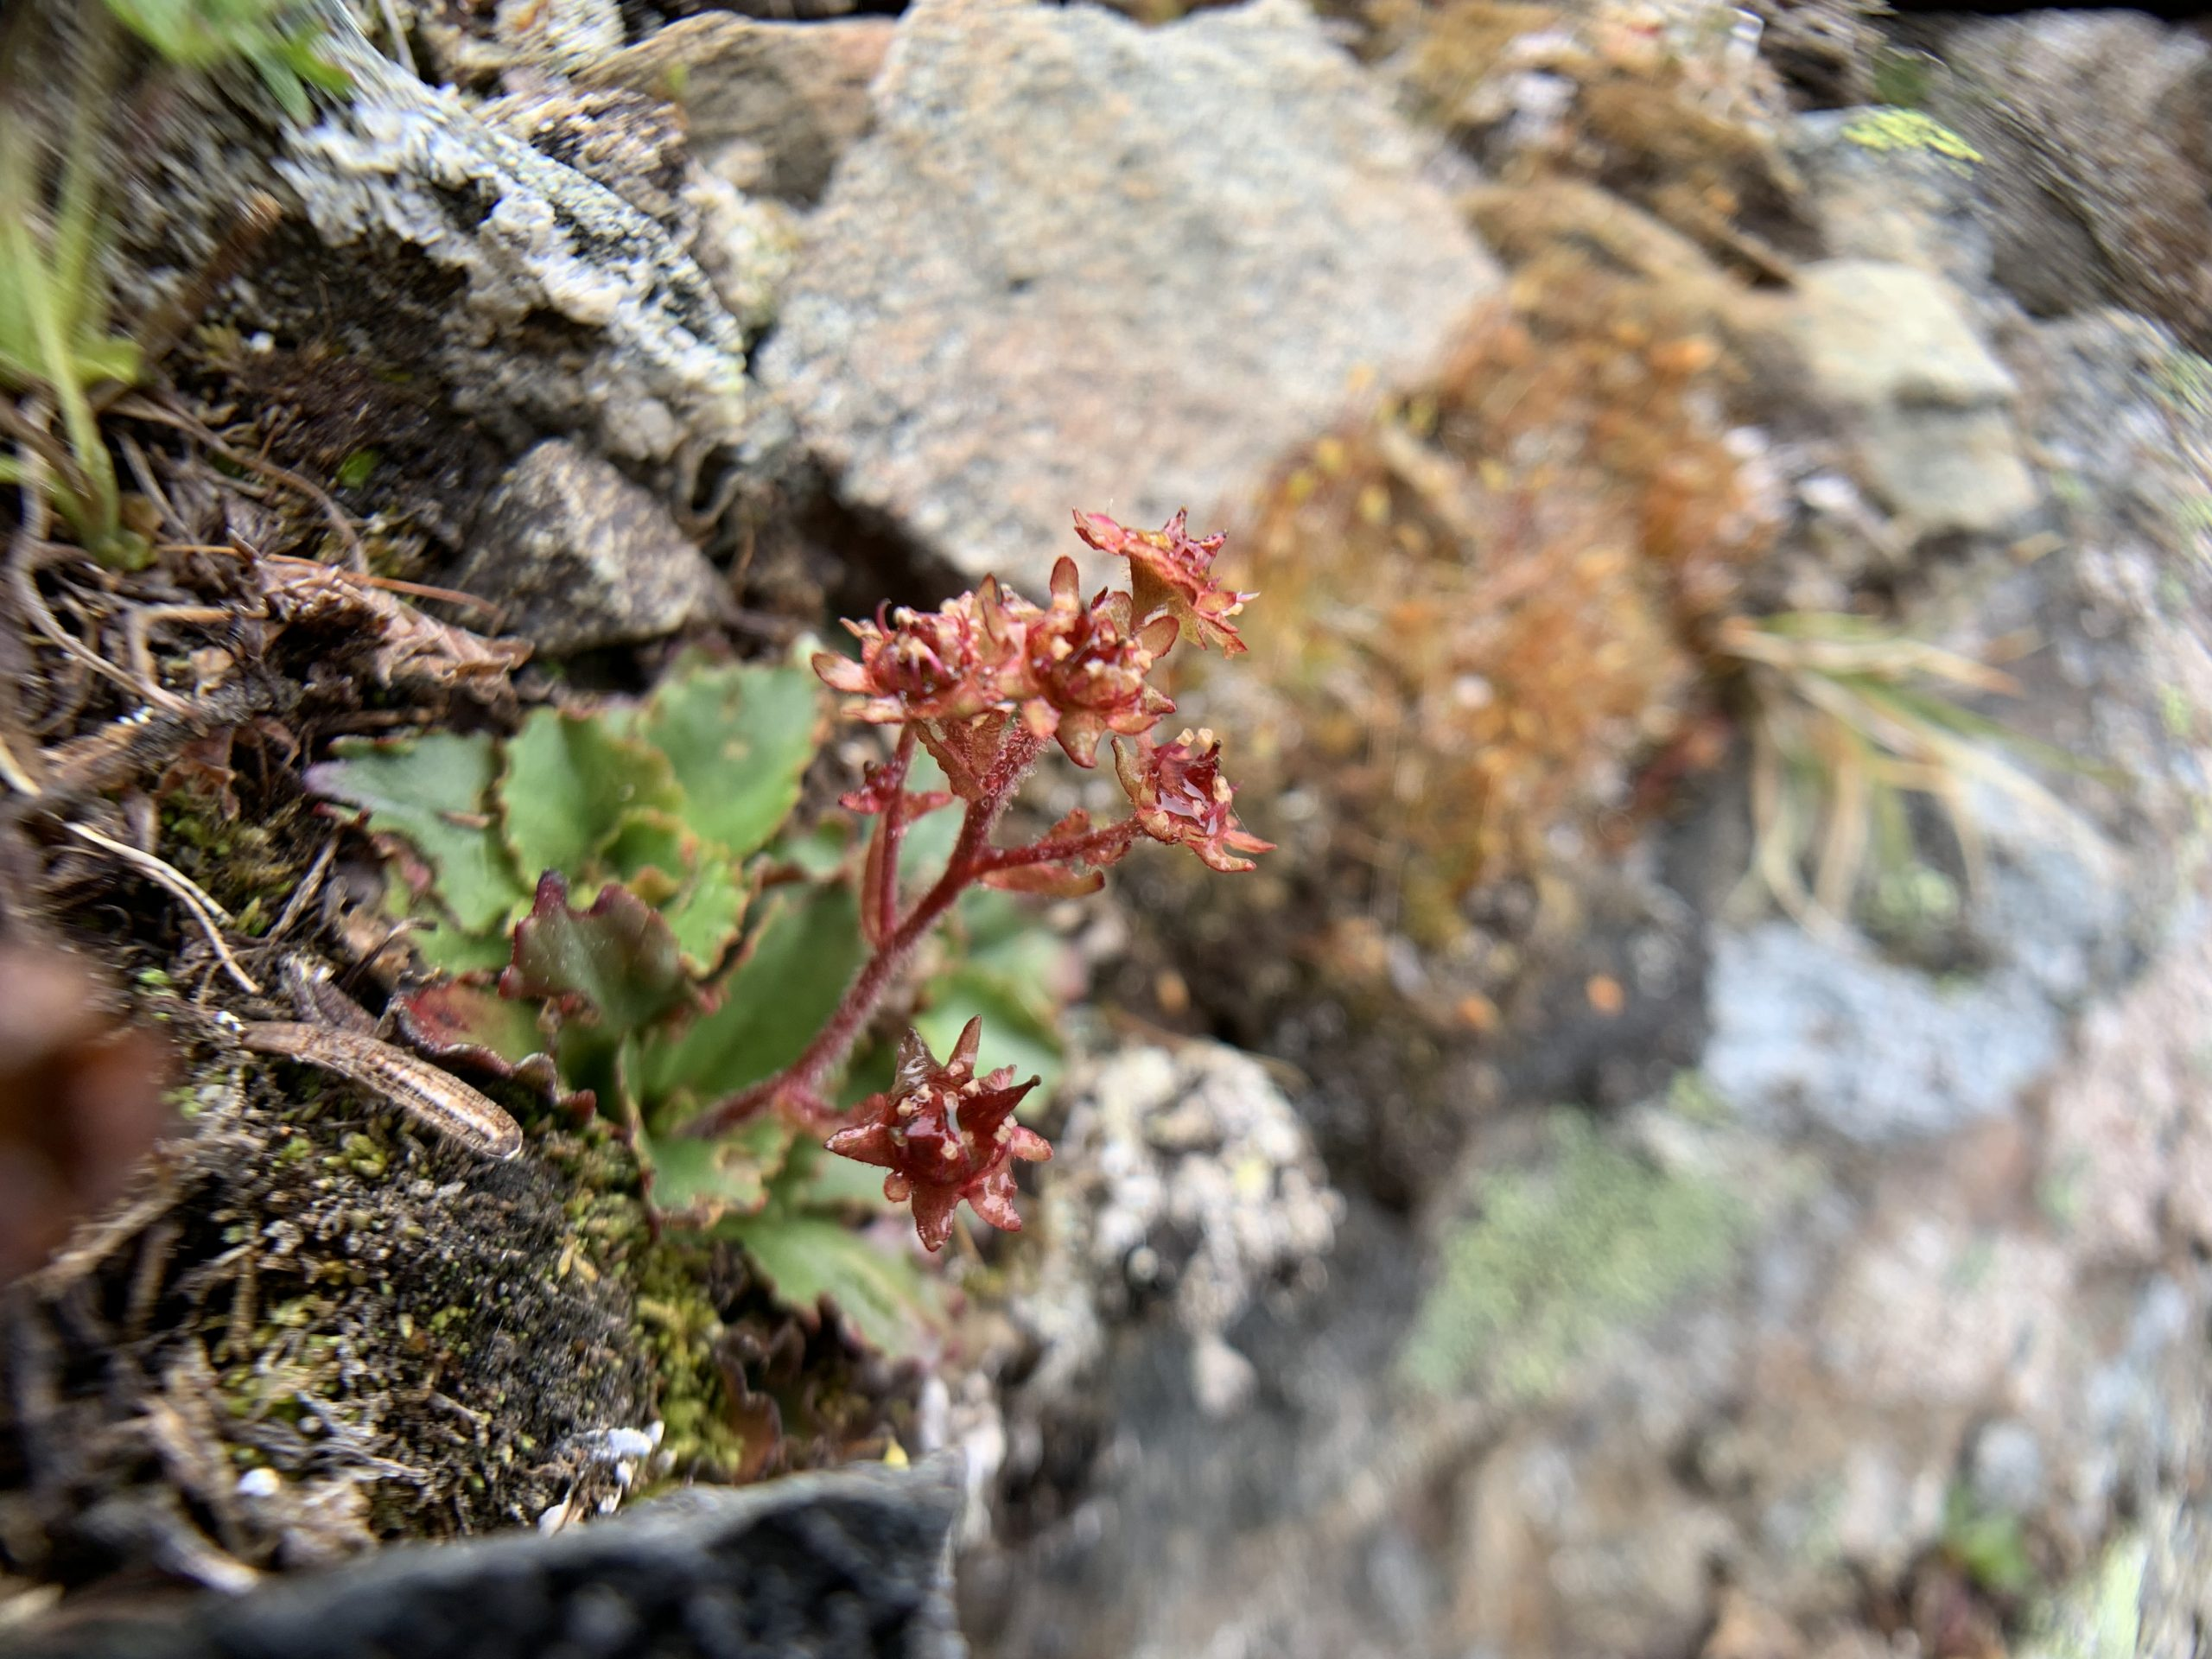 Tisch's saxifrage (Micranthes tischii) is an endemic plant found in the Olympic Mountains and one of Wendy's favorite plants because it claims her favorite habitat – alpine – as home. Rare Care is monitoring the species with interns as part of their National Park Service project.